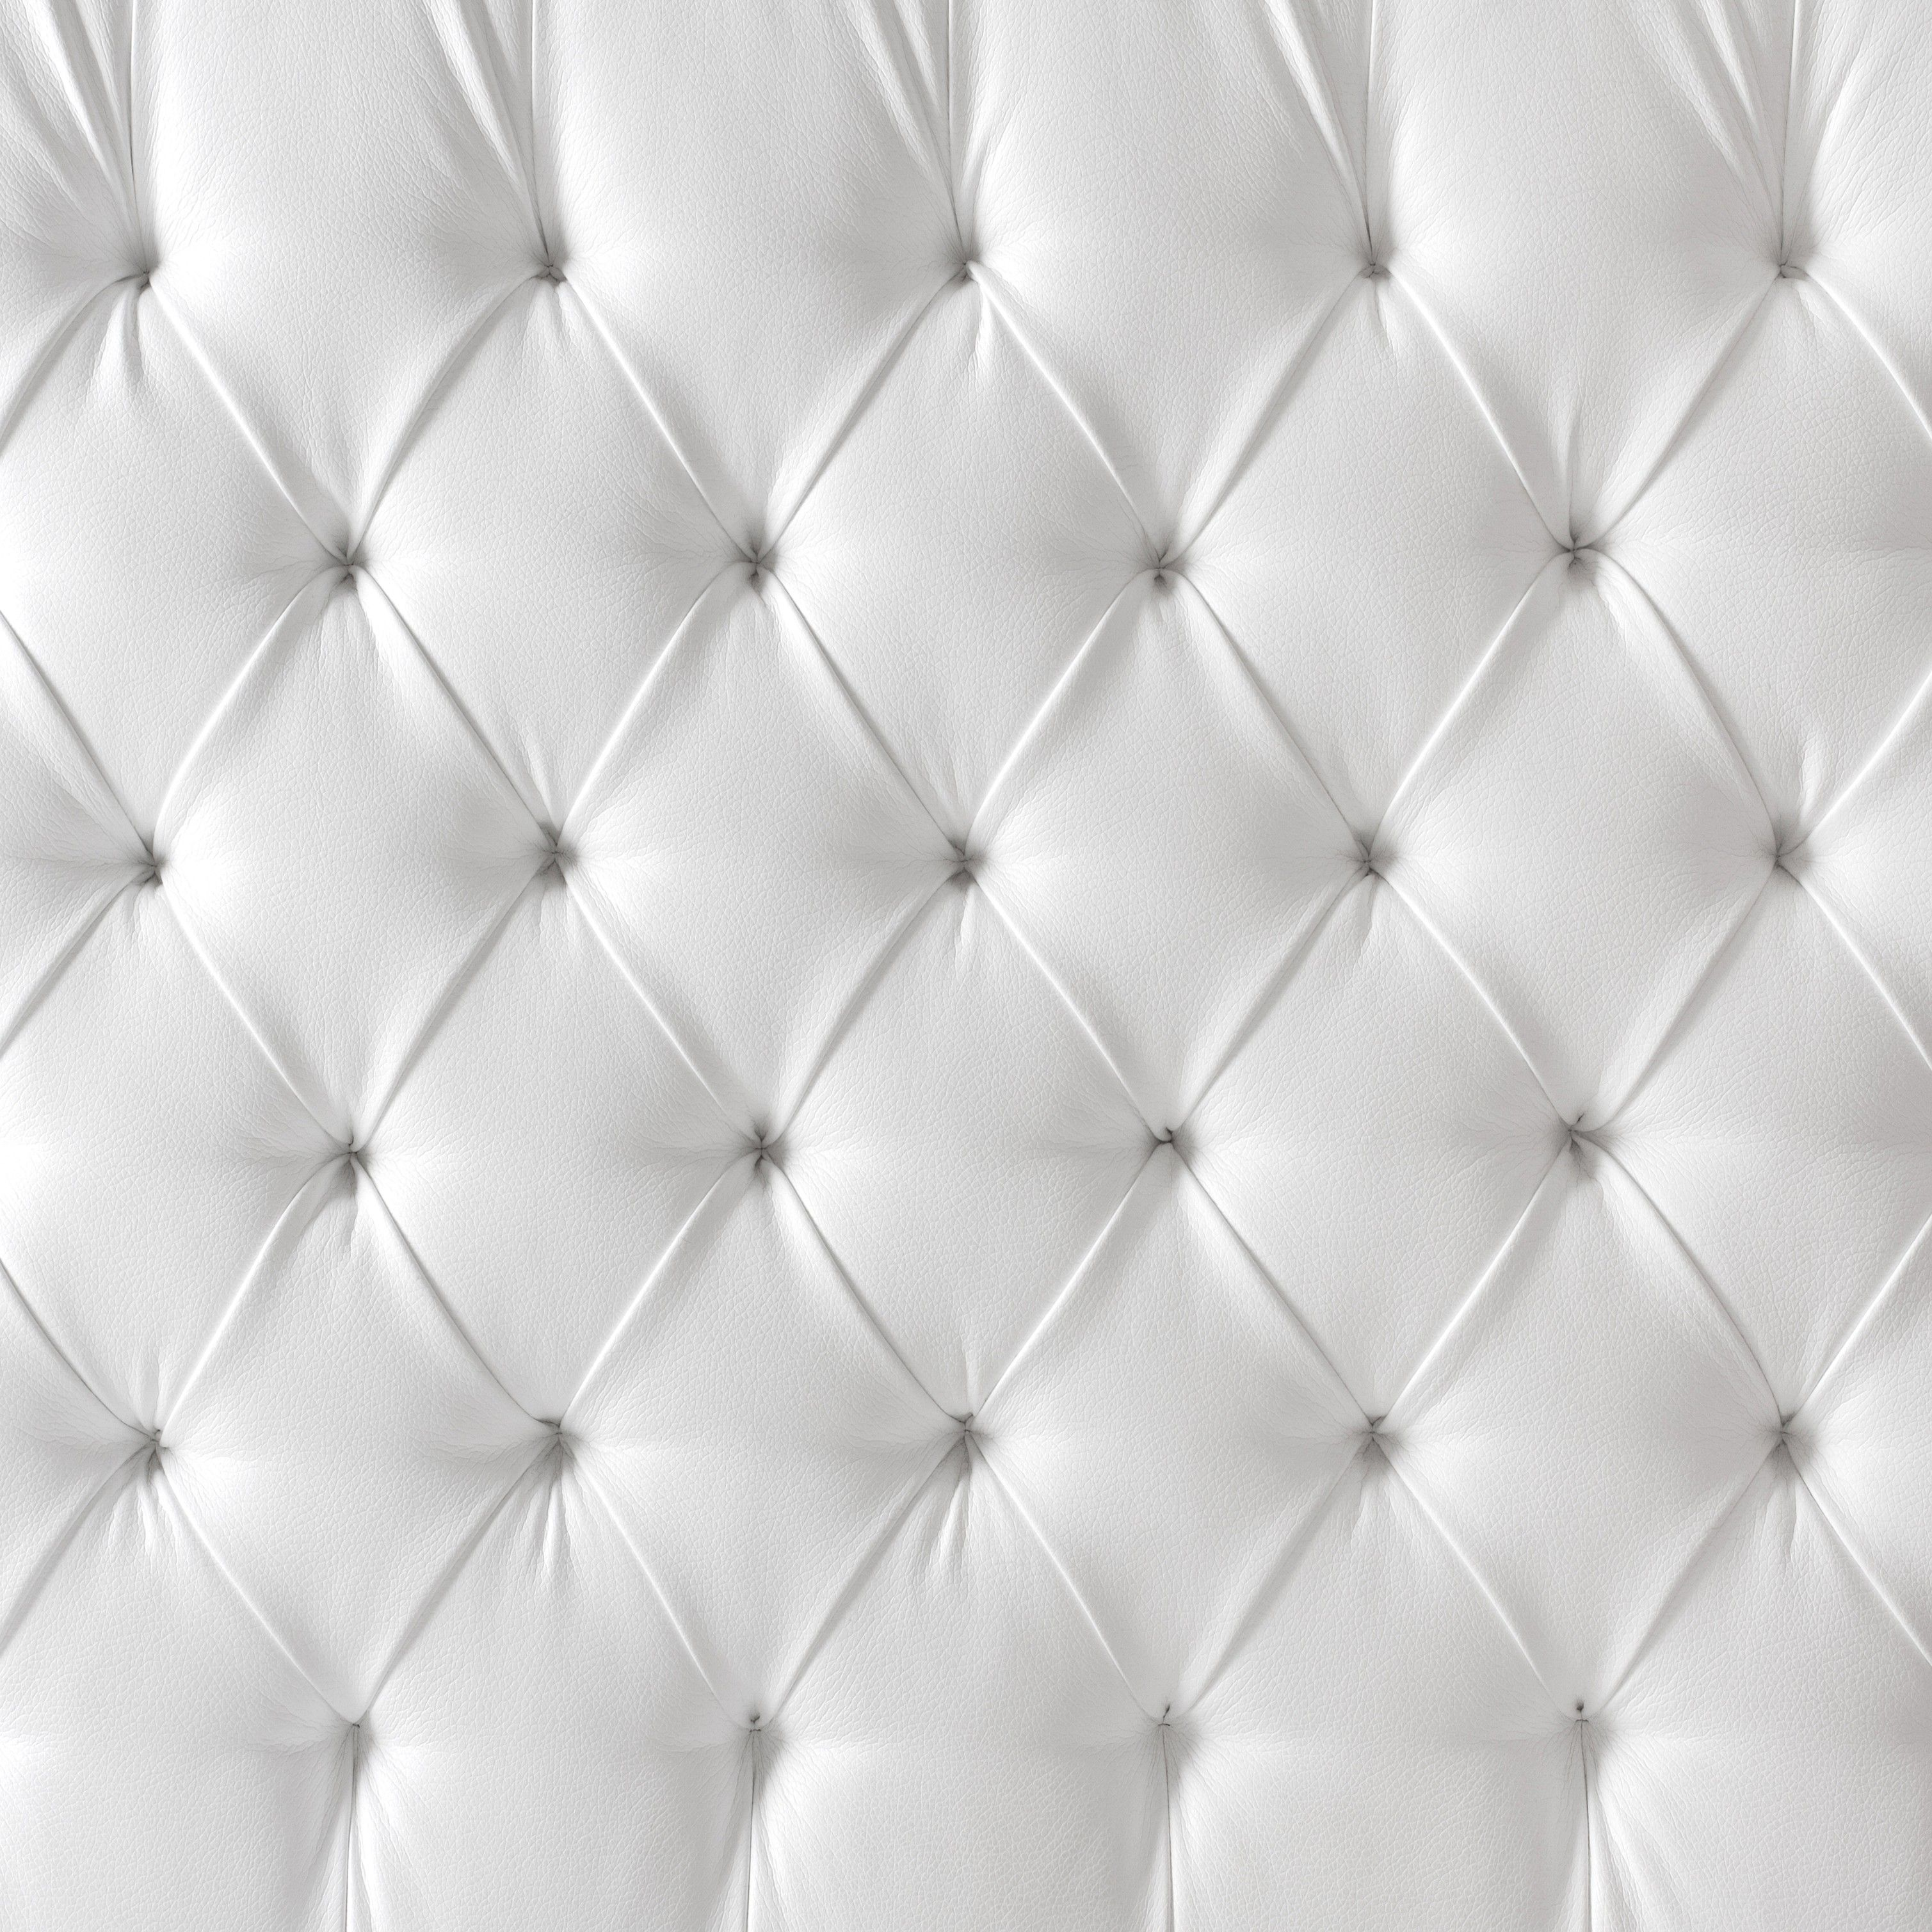 White Tufted Sofa Bed 3 Seater And 2 Armchairs Leather Texture 材质 Pinterest